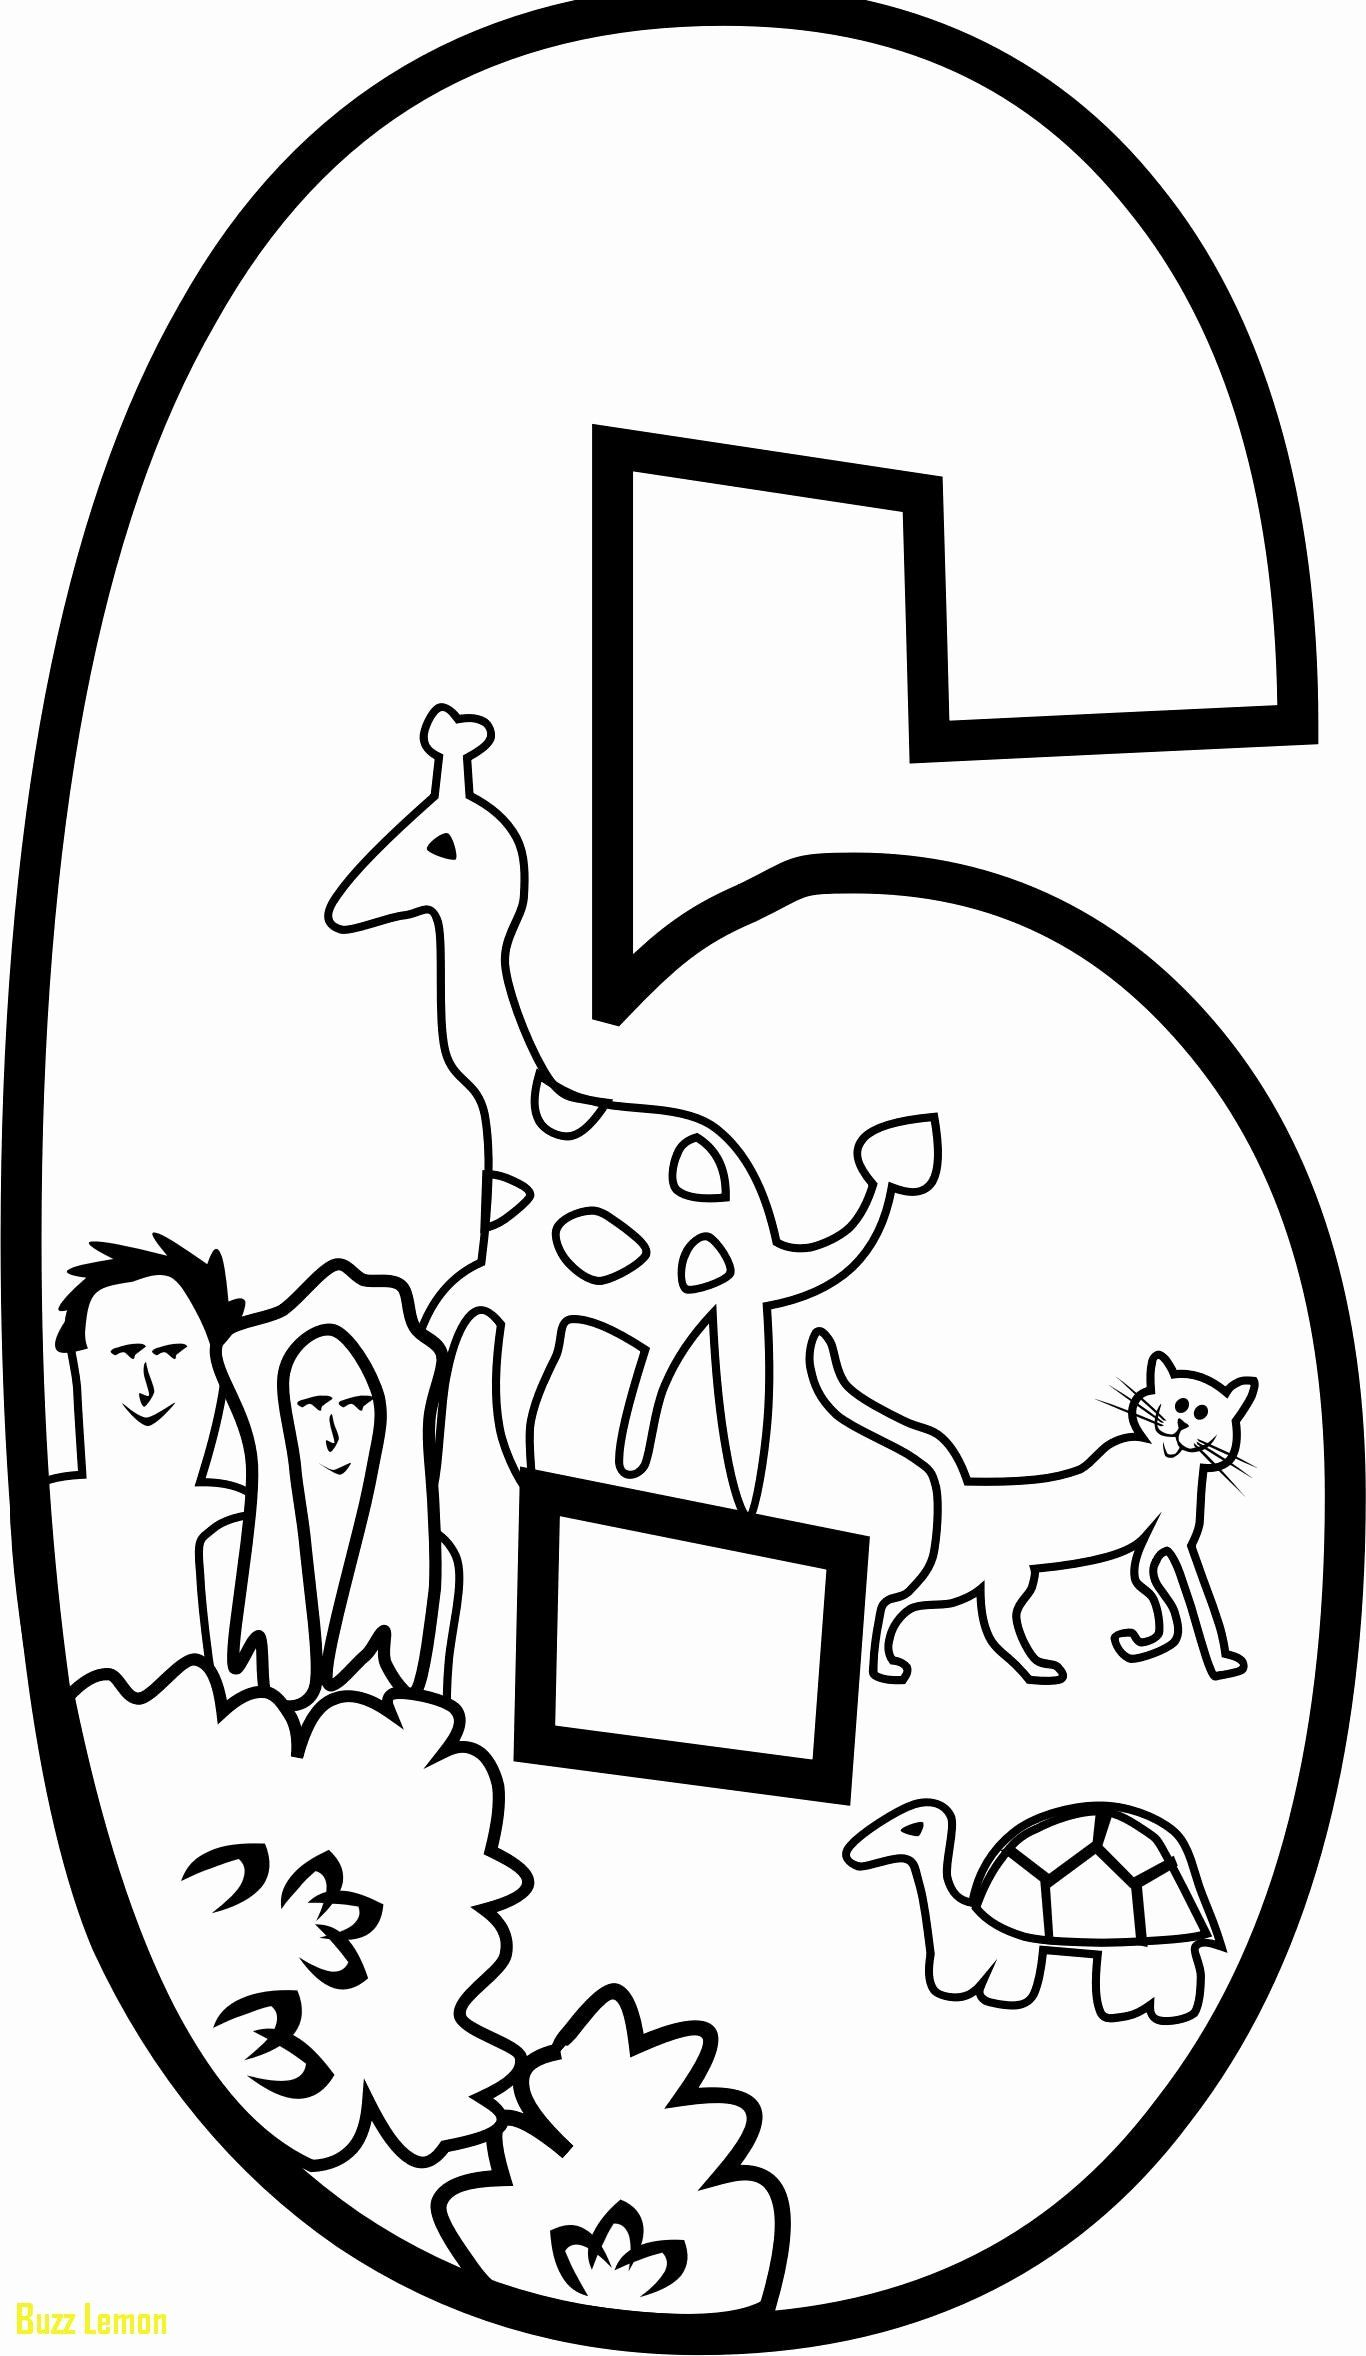 24 Days Of Creation Coloring Page In 2020 Creation Coloring